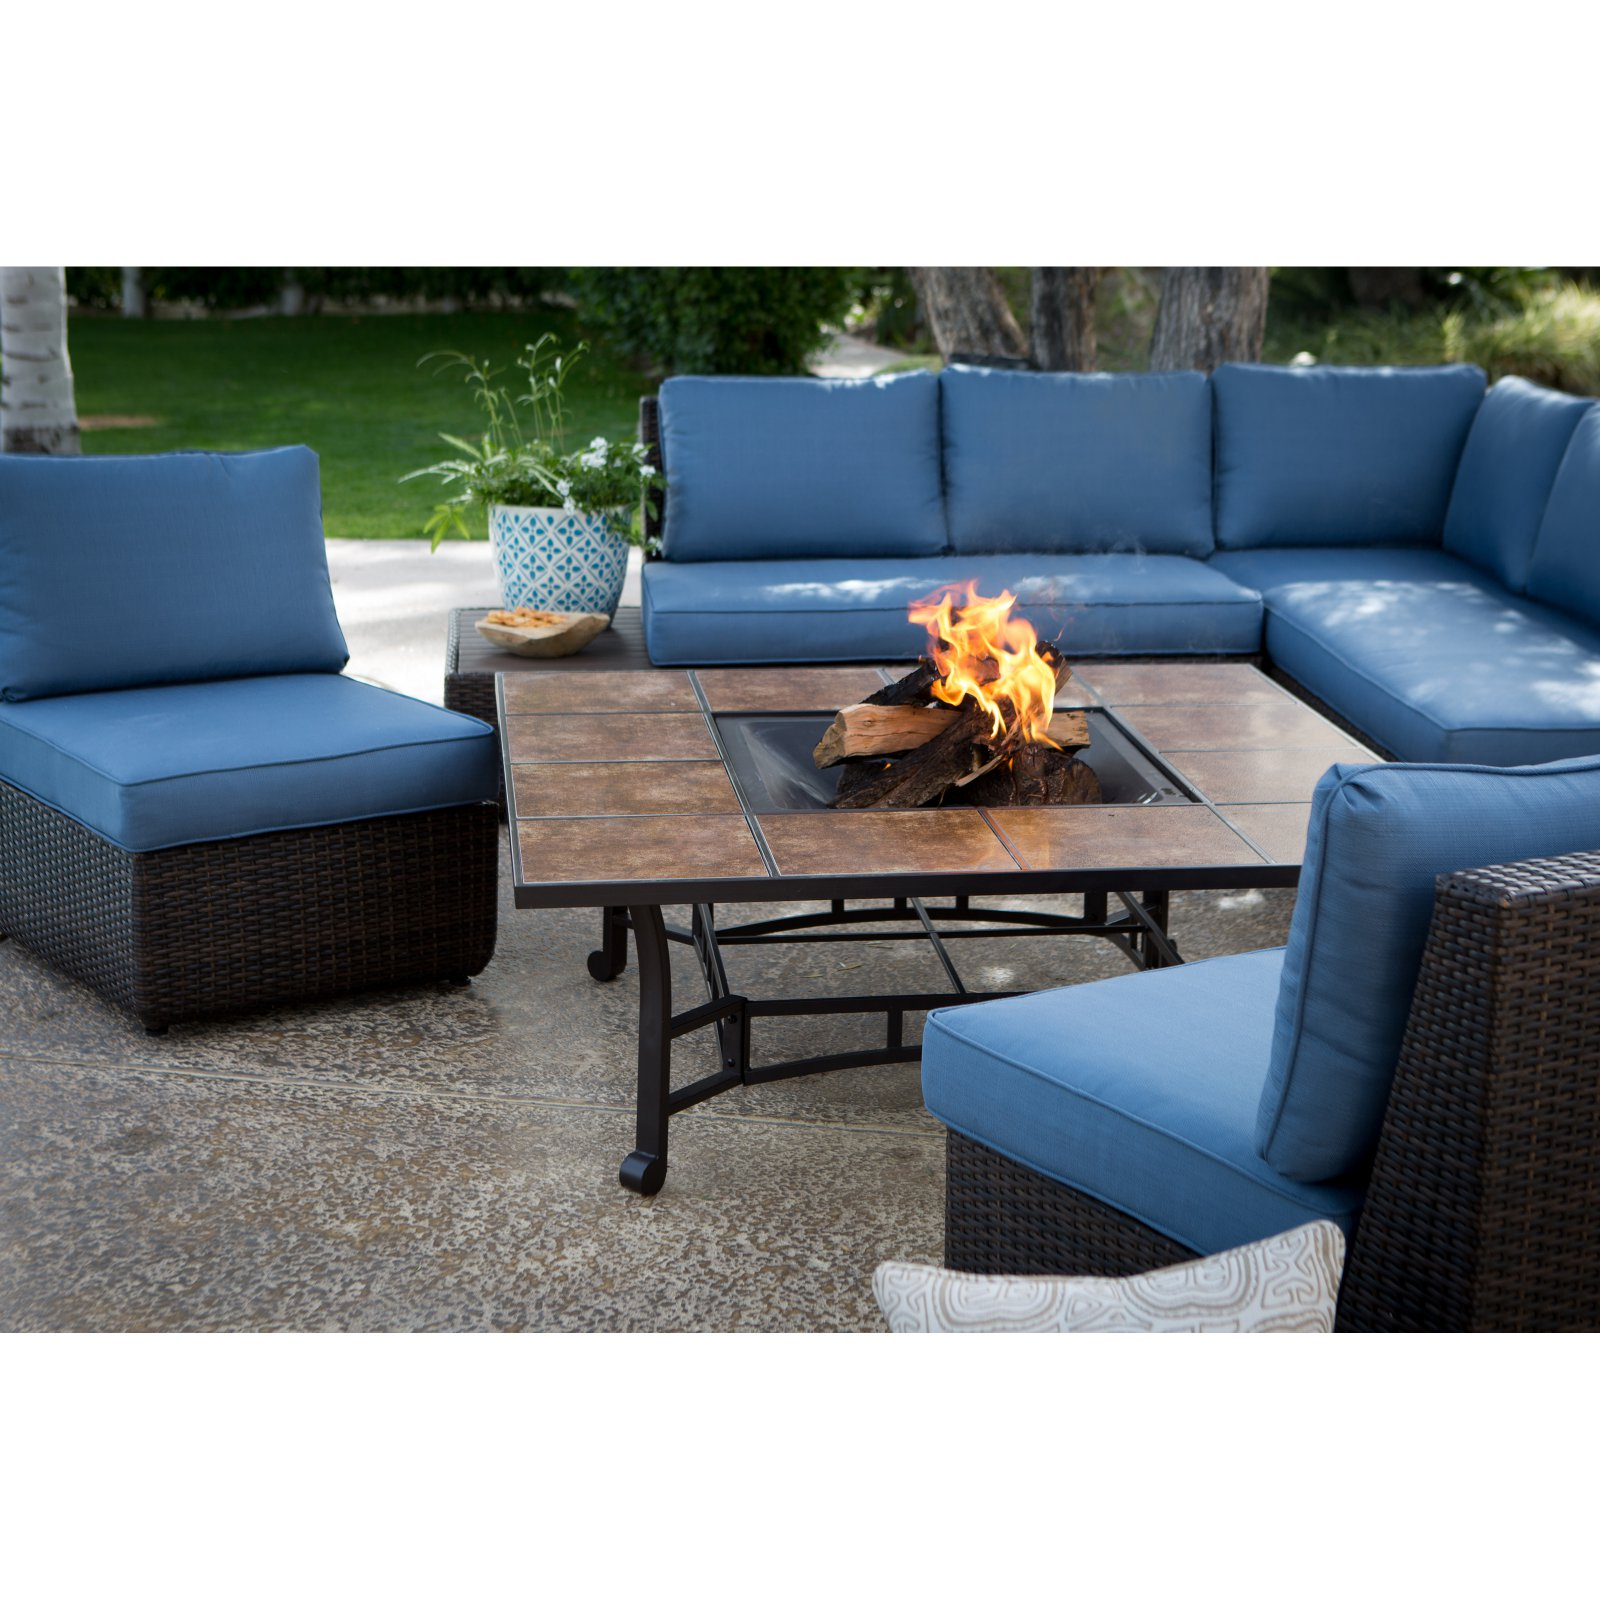 bay sofa leather black pen belham living luciana sectional set with wheatland fire pit